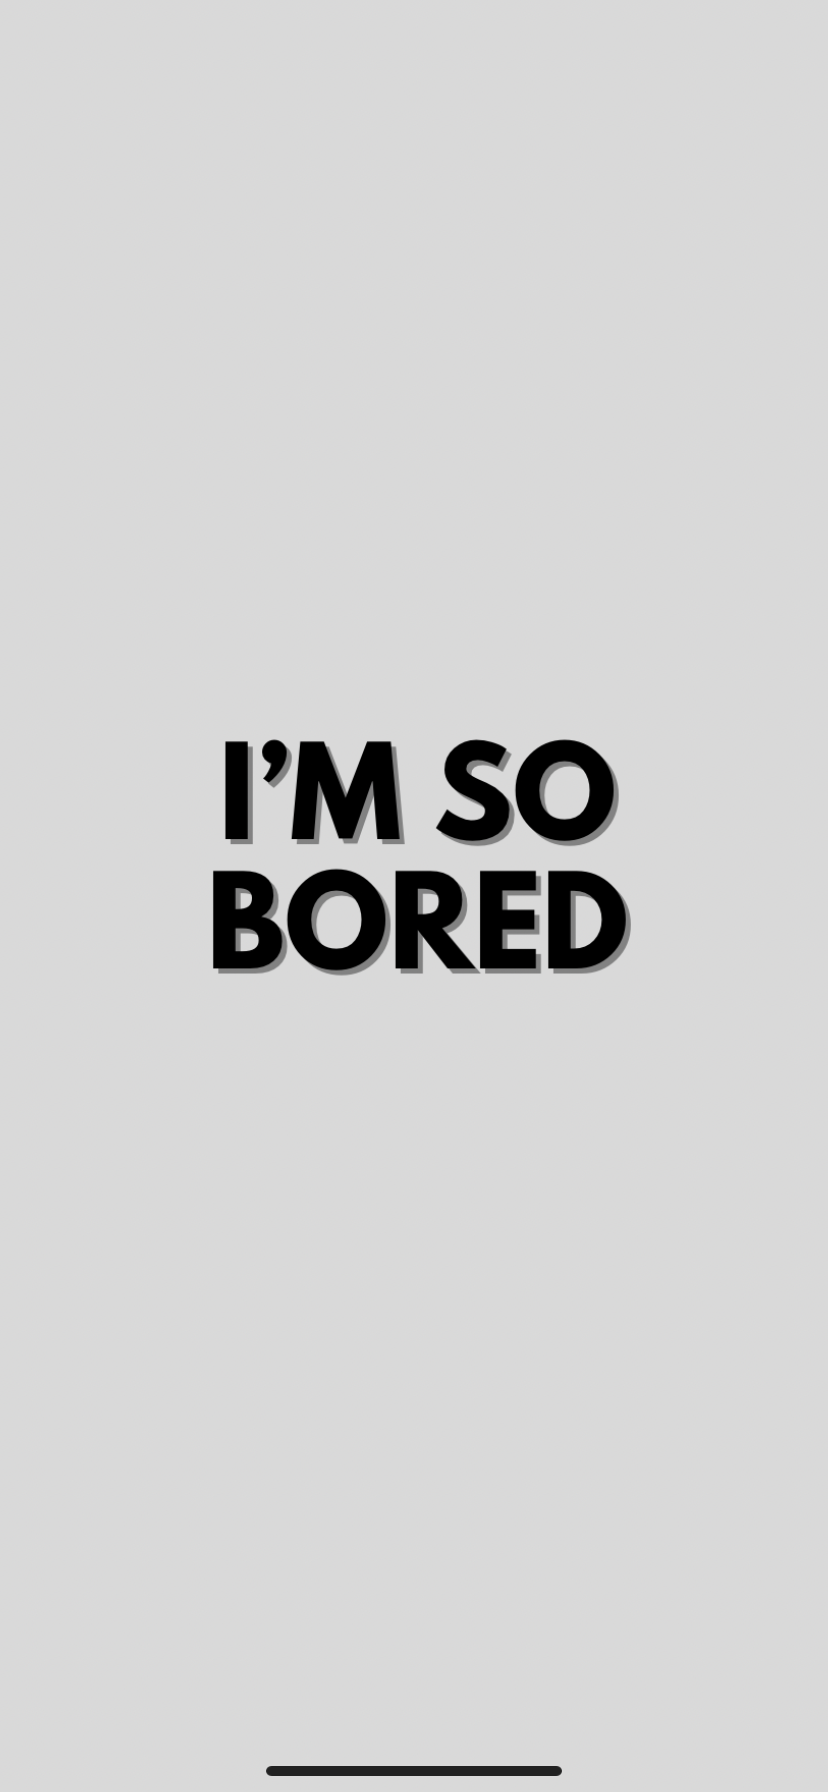 I'm so bored, why kids being bored can be good